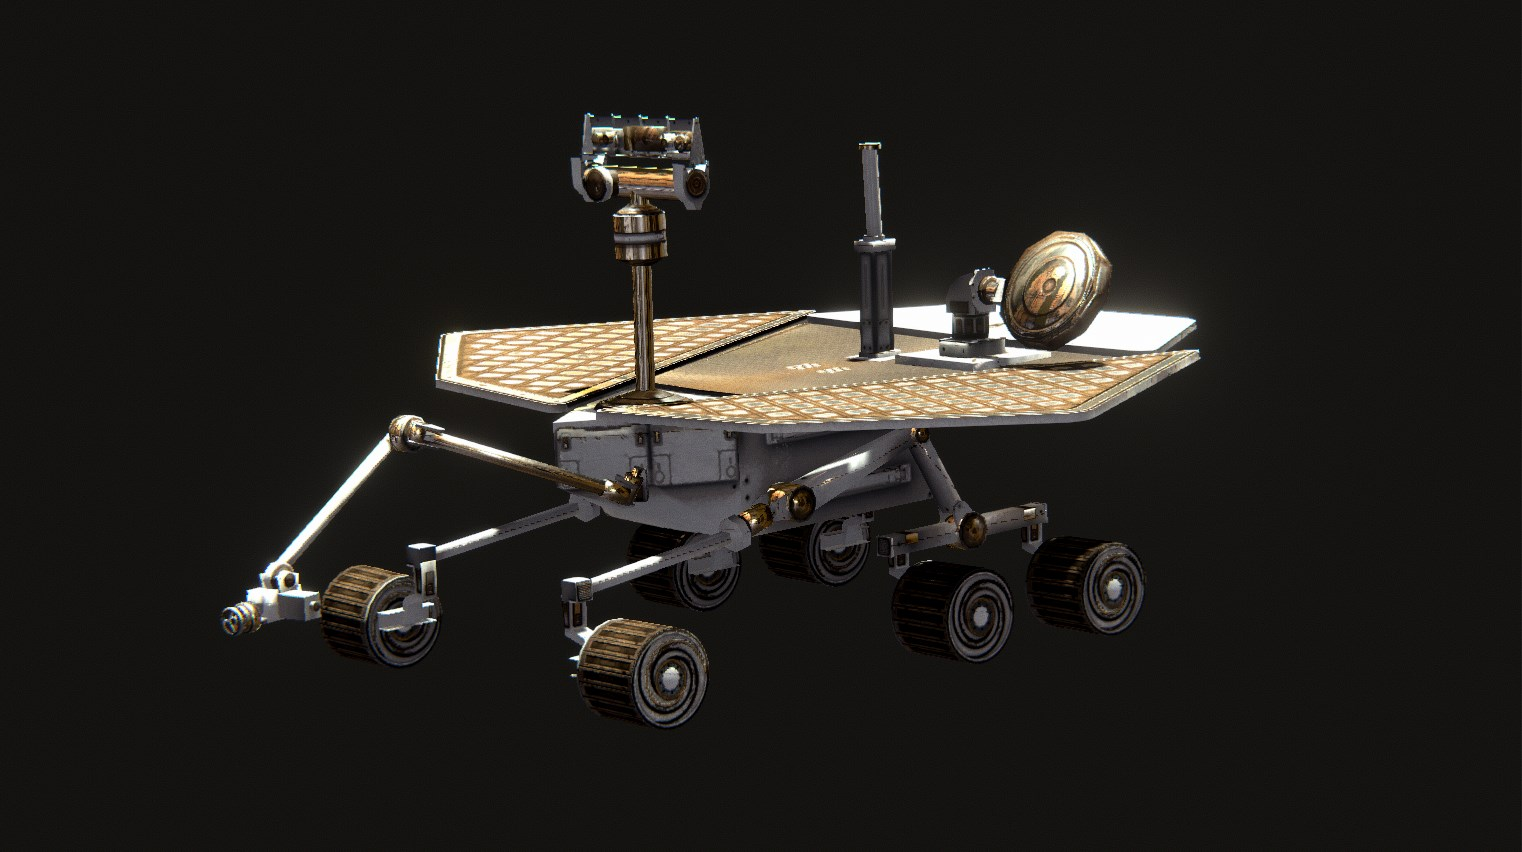 Explorer Drone - These workhorses need very little power thanks to their on board solar panels, allowing them to continuously roam and report. They're also great at mining, repairing, and some digging.